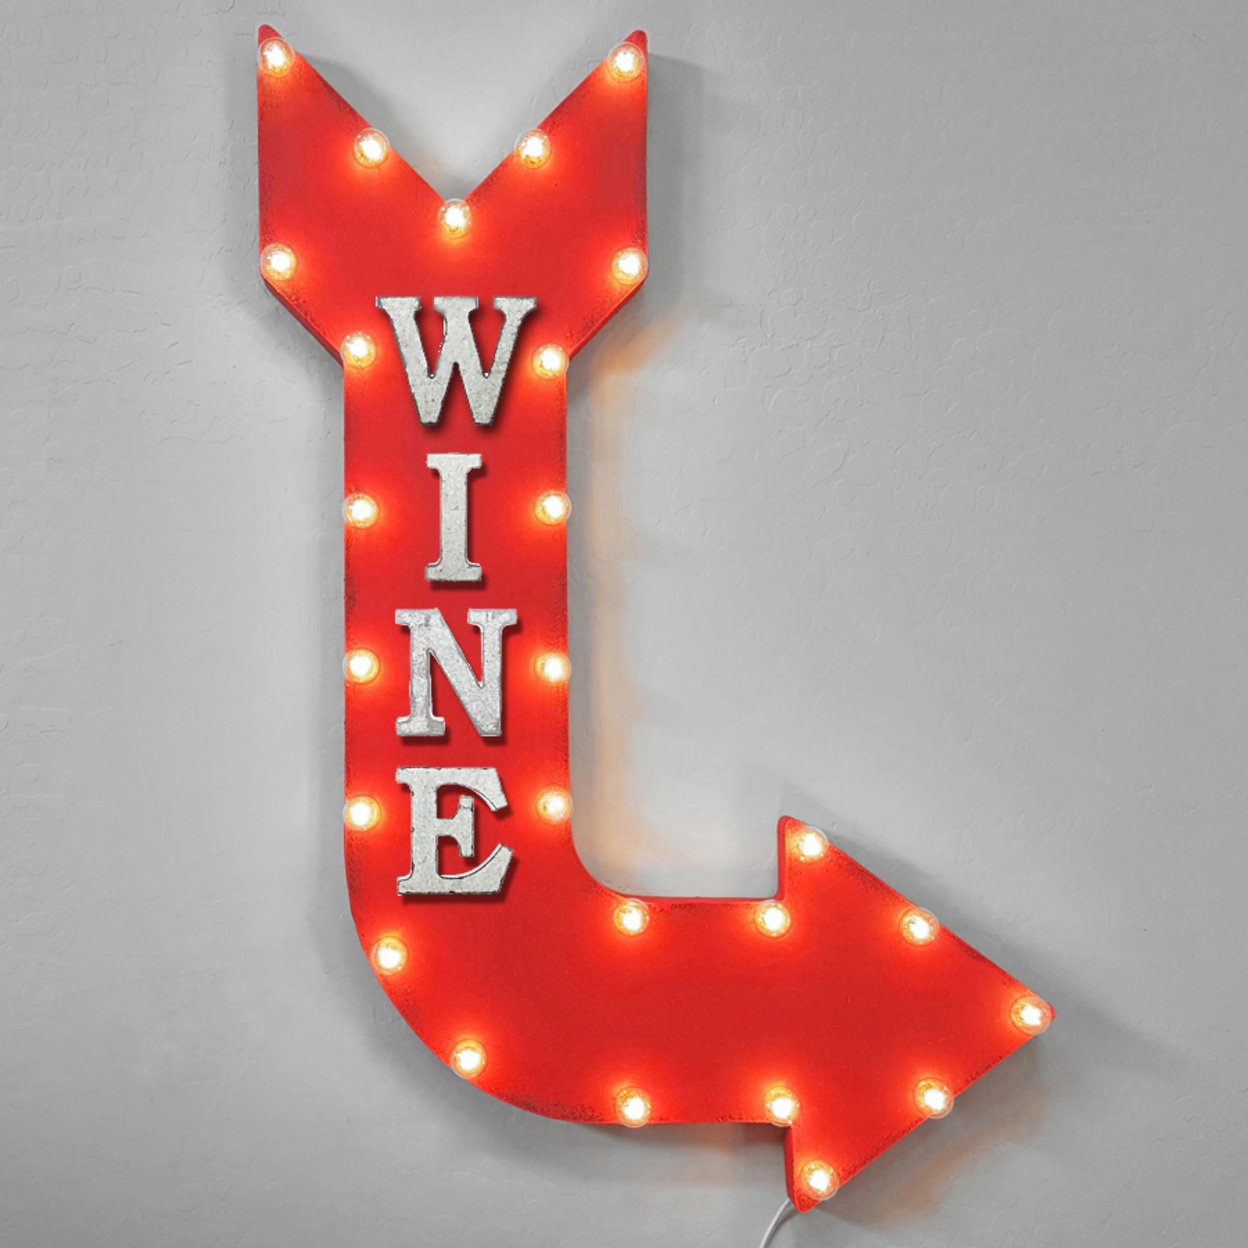 Wine Wine Bar Vino Red White Wine Drink Drinks Light Up Restaurant Large Rustic Metal Marquee Sign Arrow - 14 Colors. - Rust, Right Vertical, Plug-In 5a0fa772e224610cc32c07c6